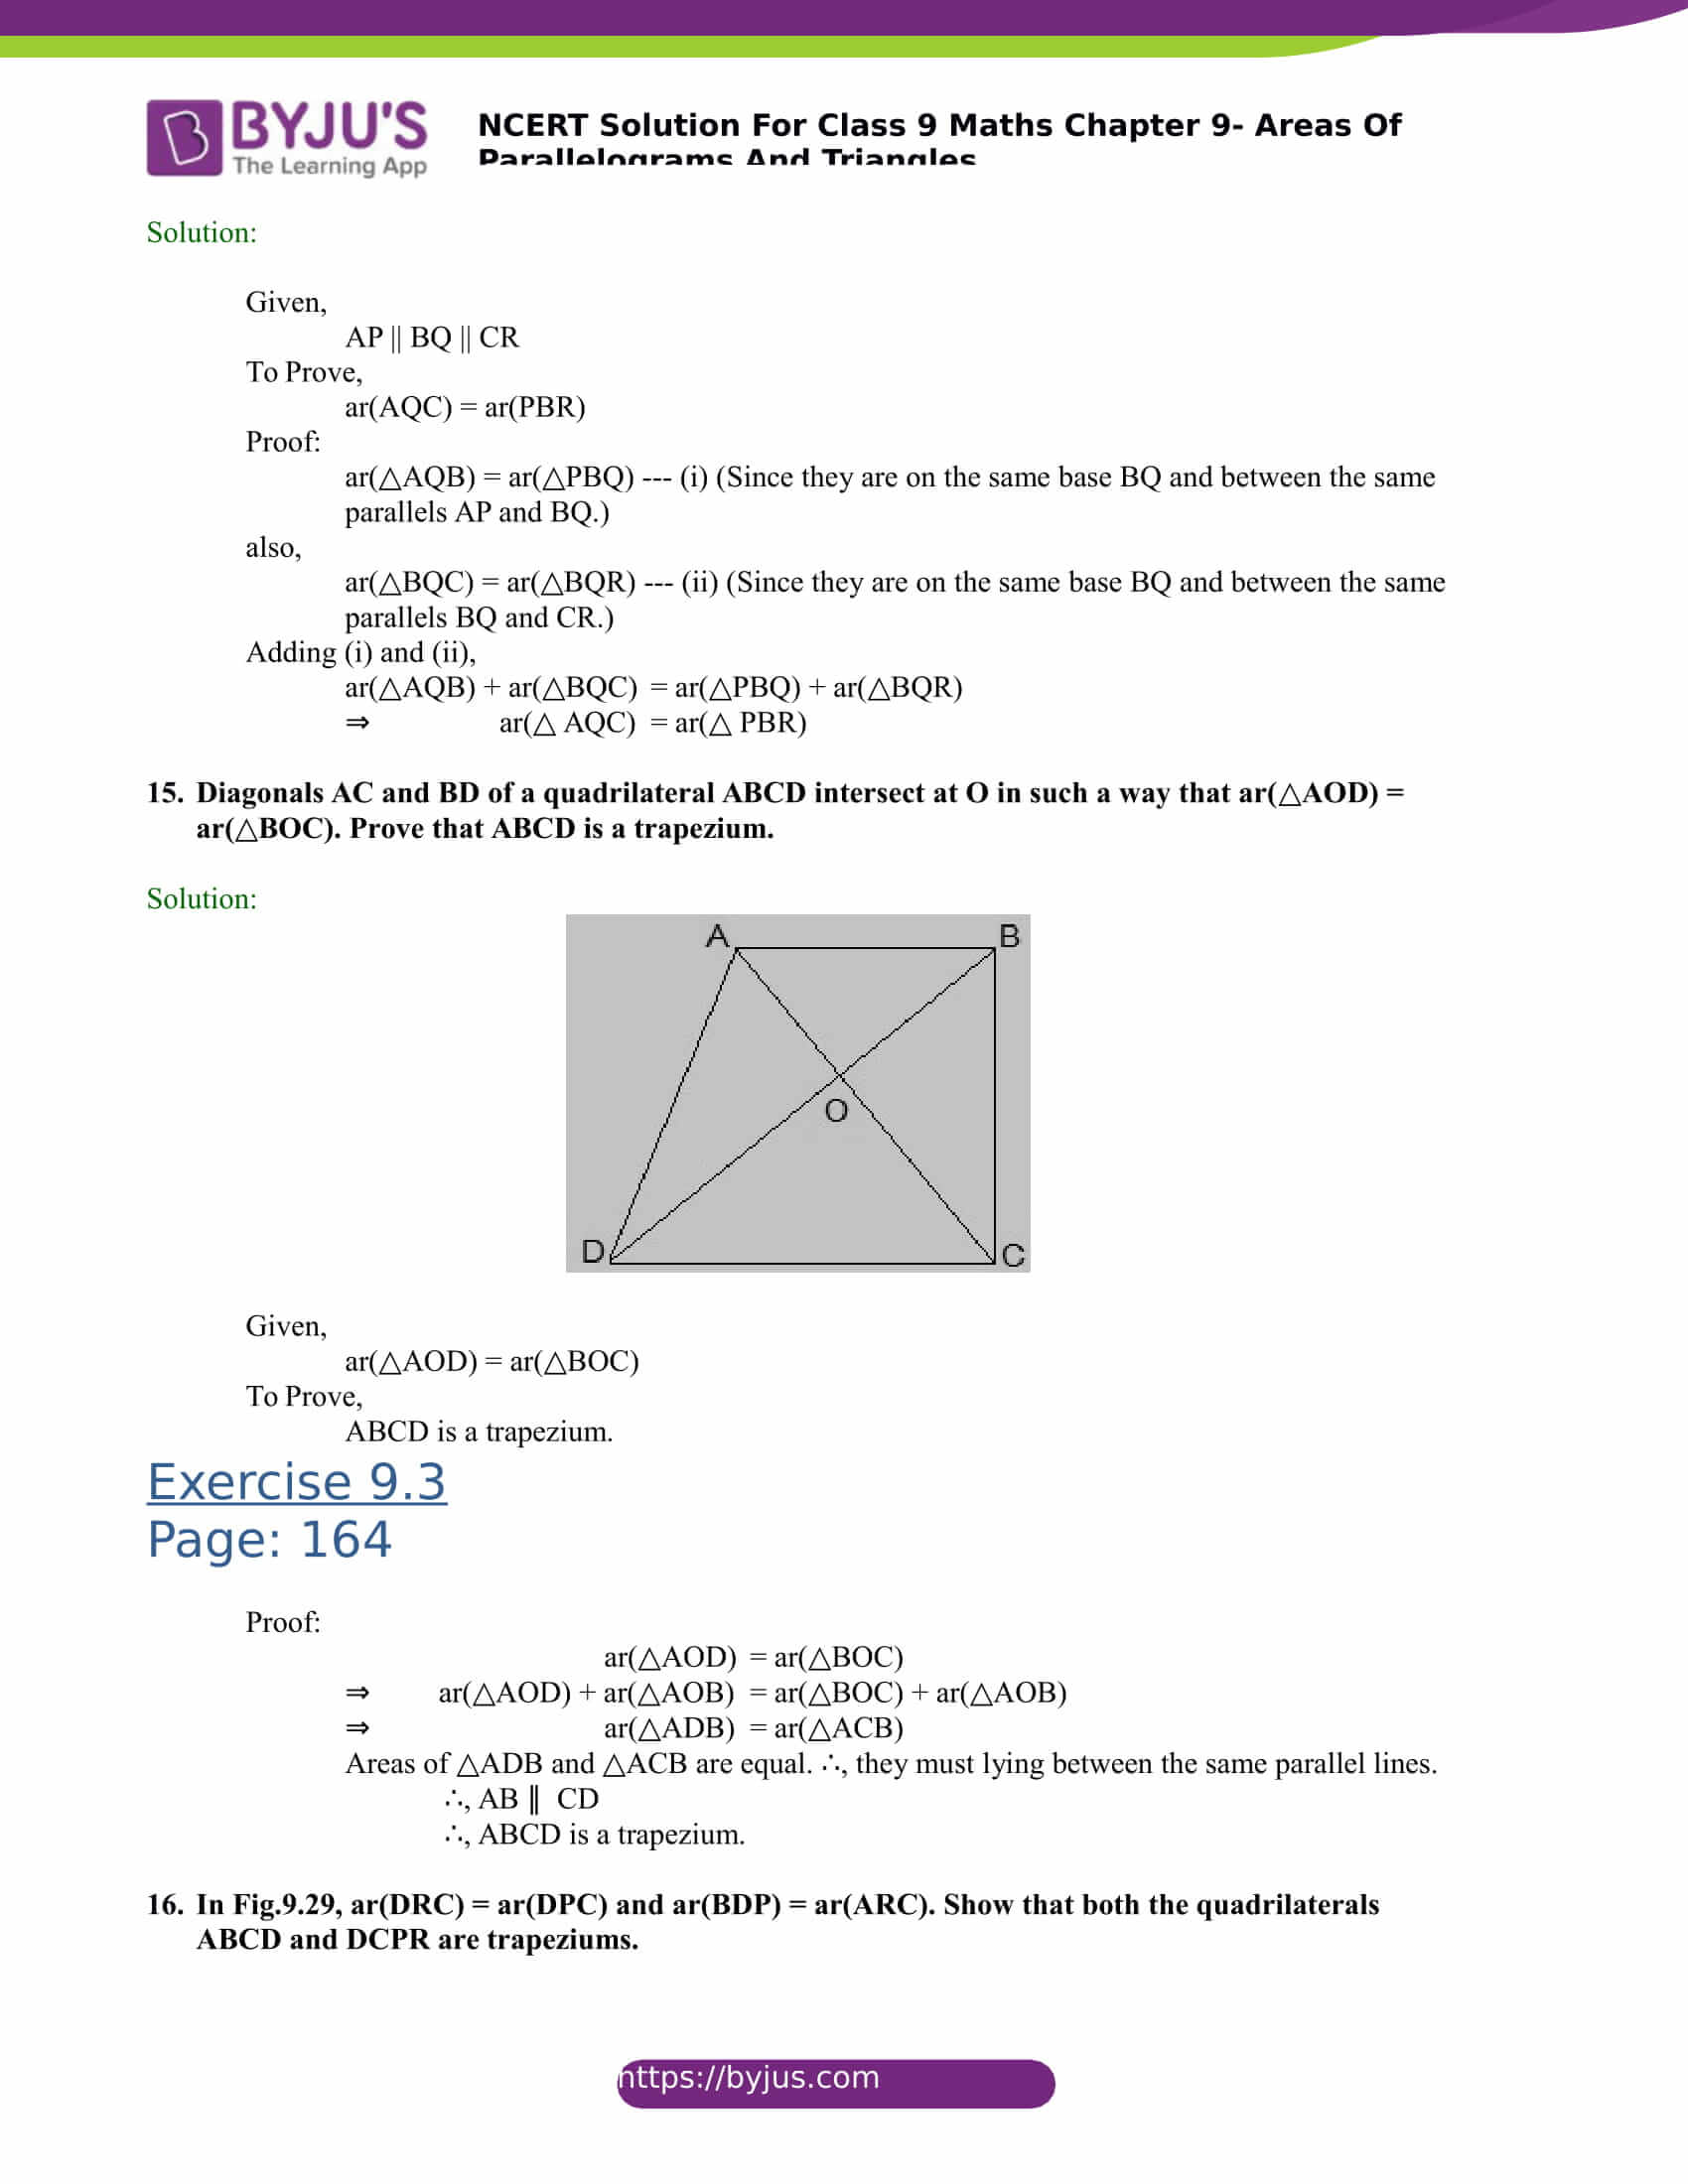 NCERT Solutions for class 9 Maths Chapter 9 Areas of parallelograms and triangles Part 18